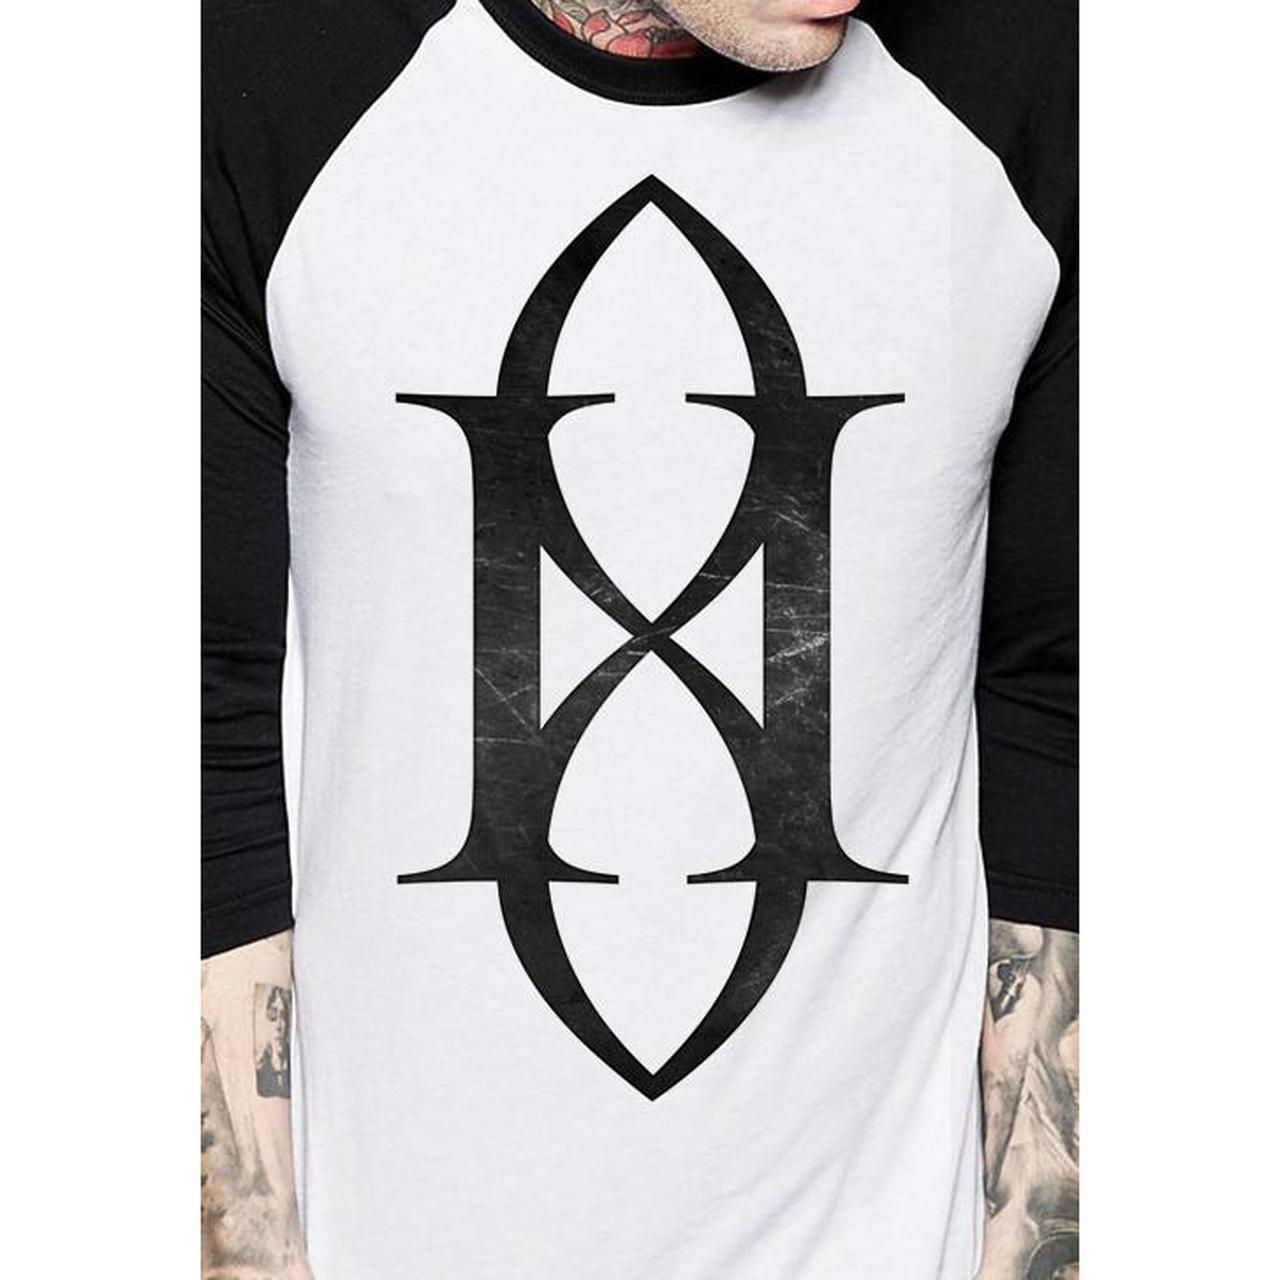 Gemini syndrome mori 34 sleeve unisex american apparel hover to zoom buycottarizona Gallery